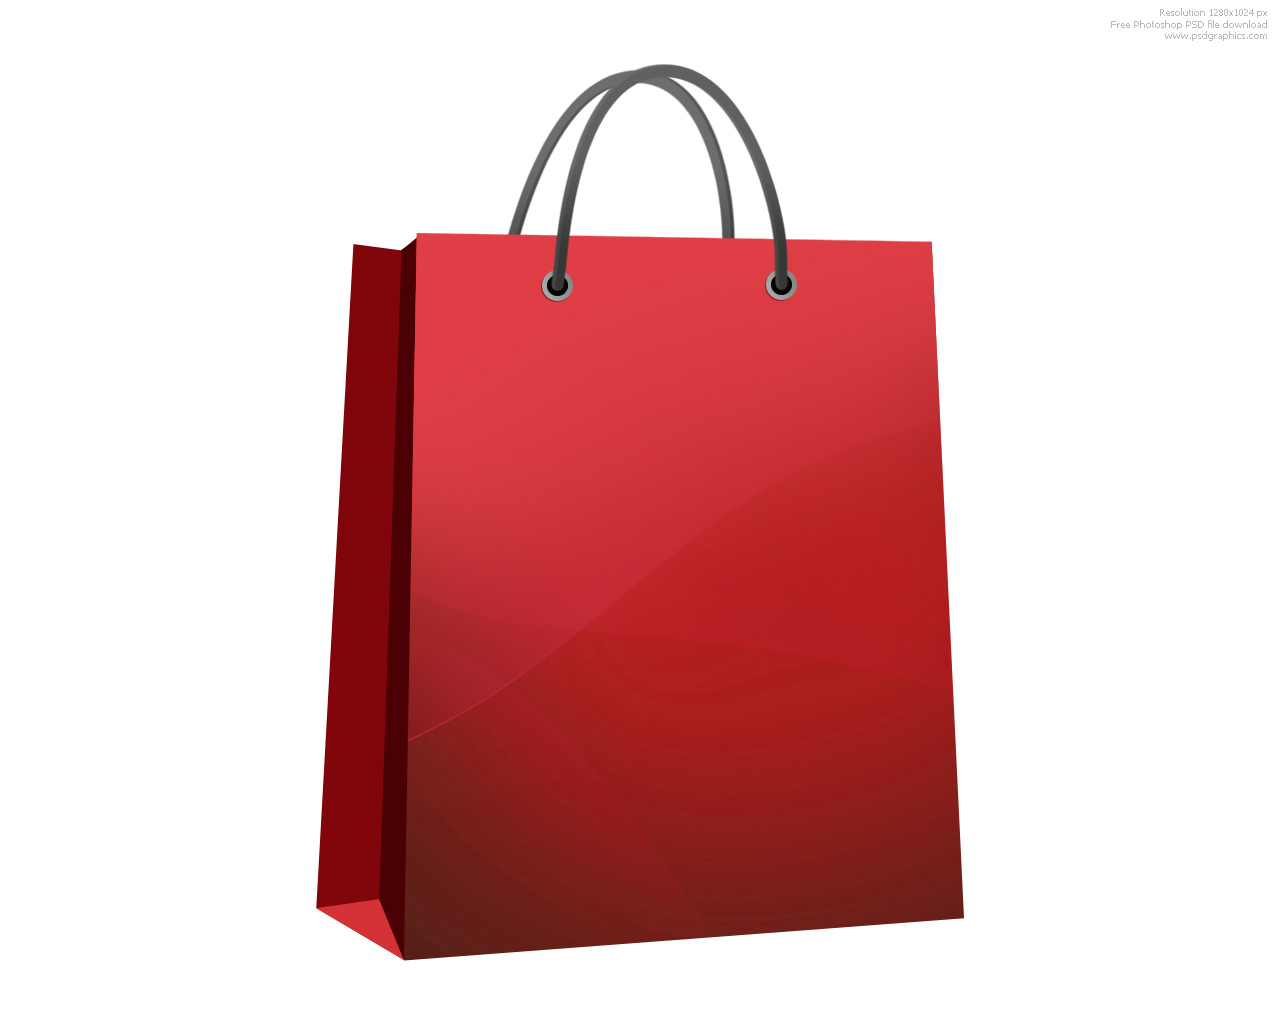 Cart clipart shopping bag Bag icon Shopping bag Shopping